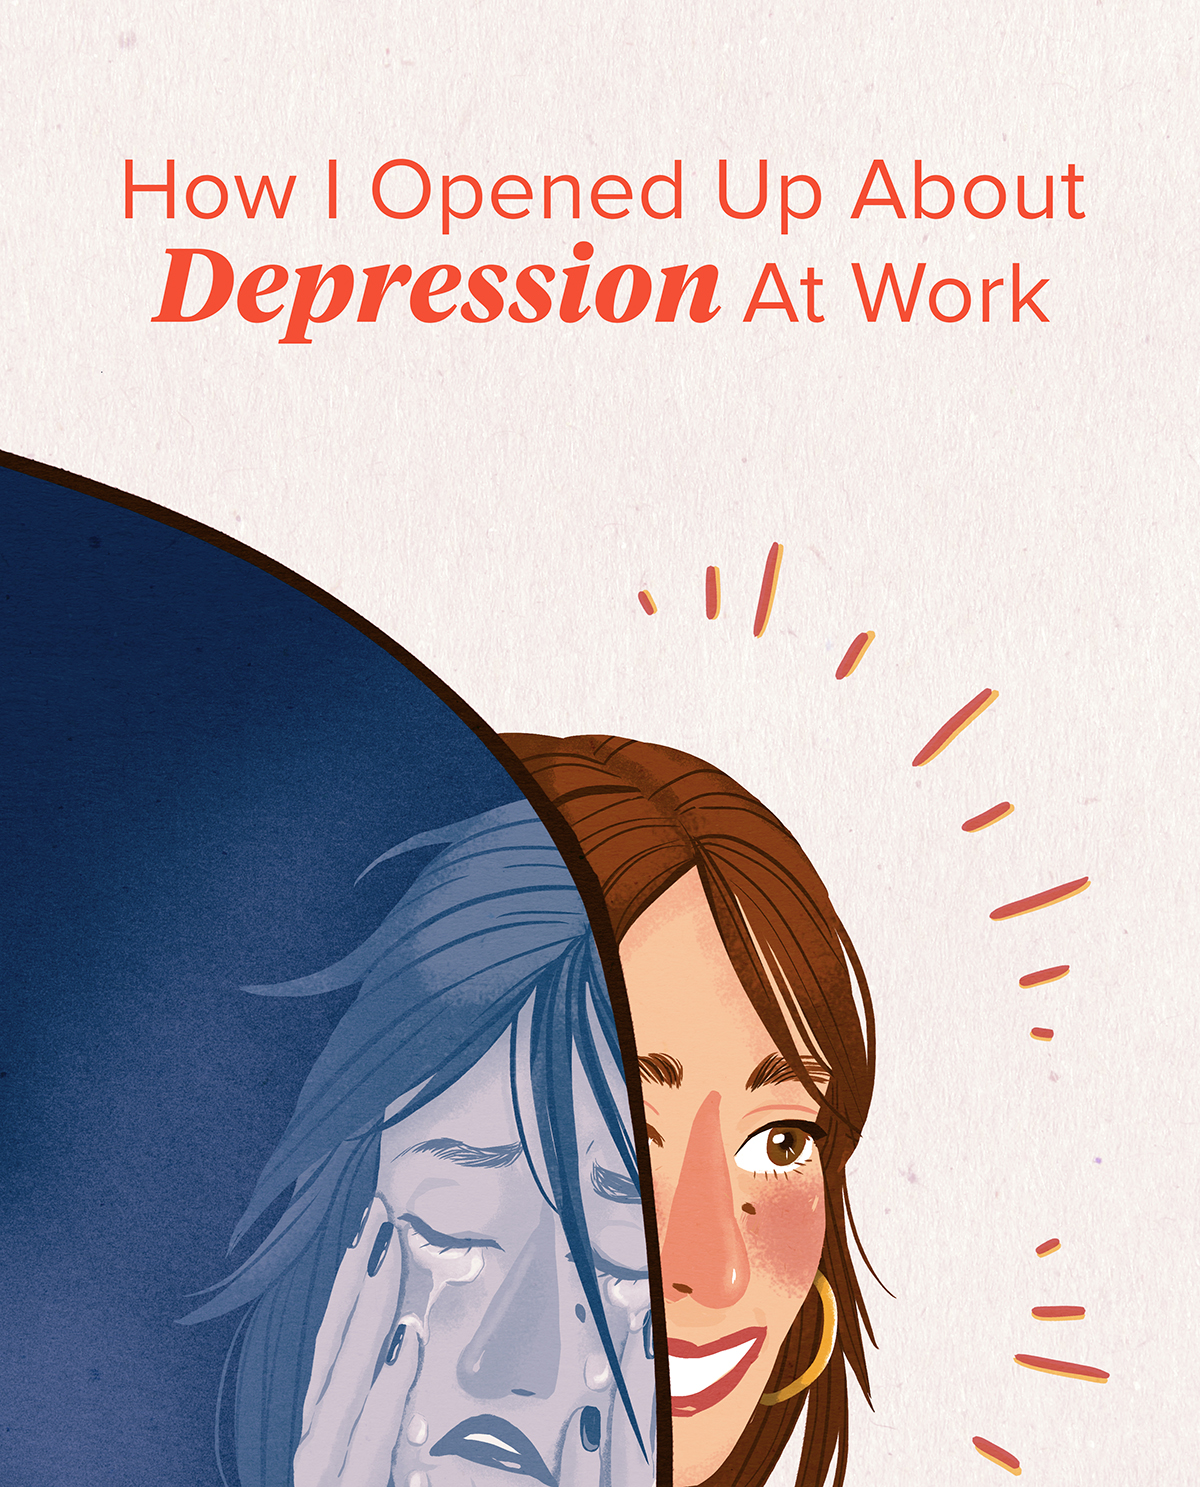 Part 5: Telling Others About Depression